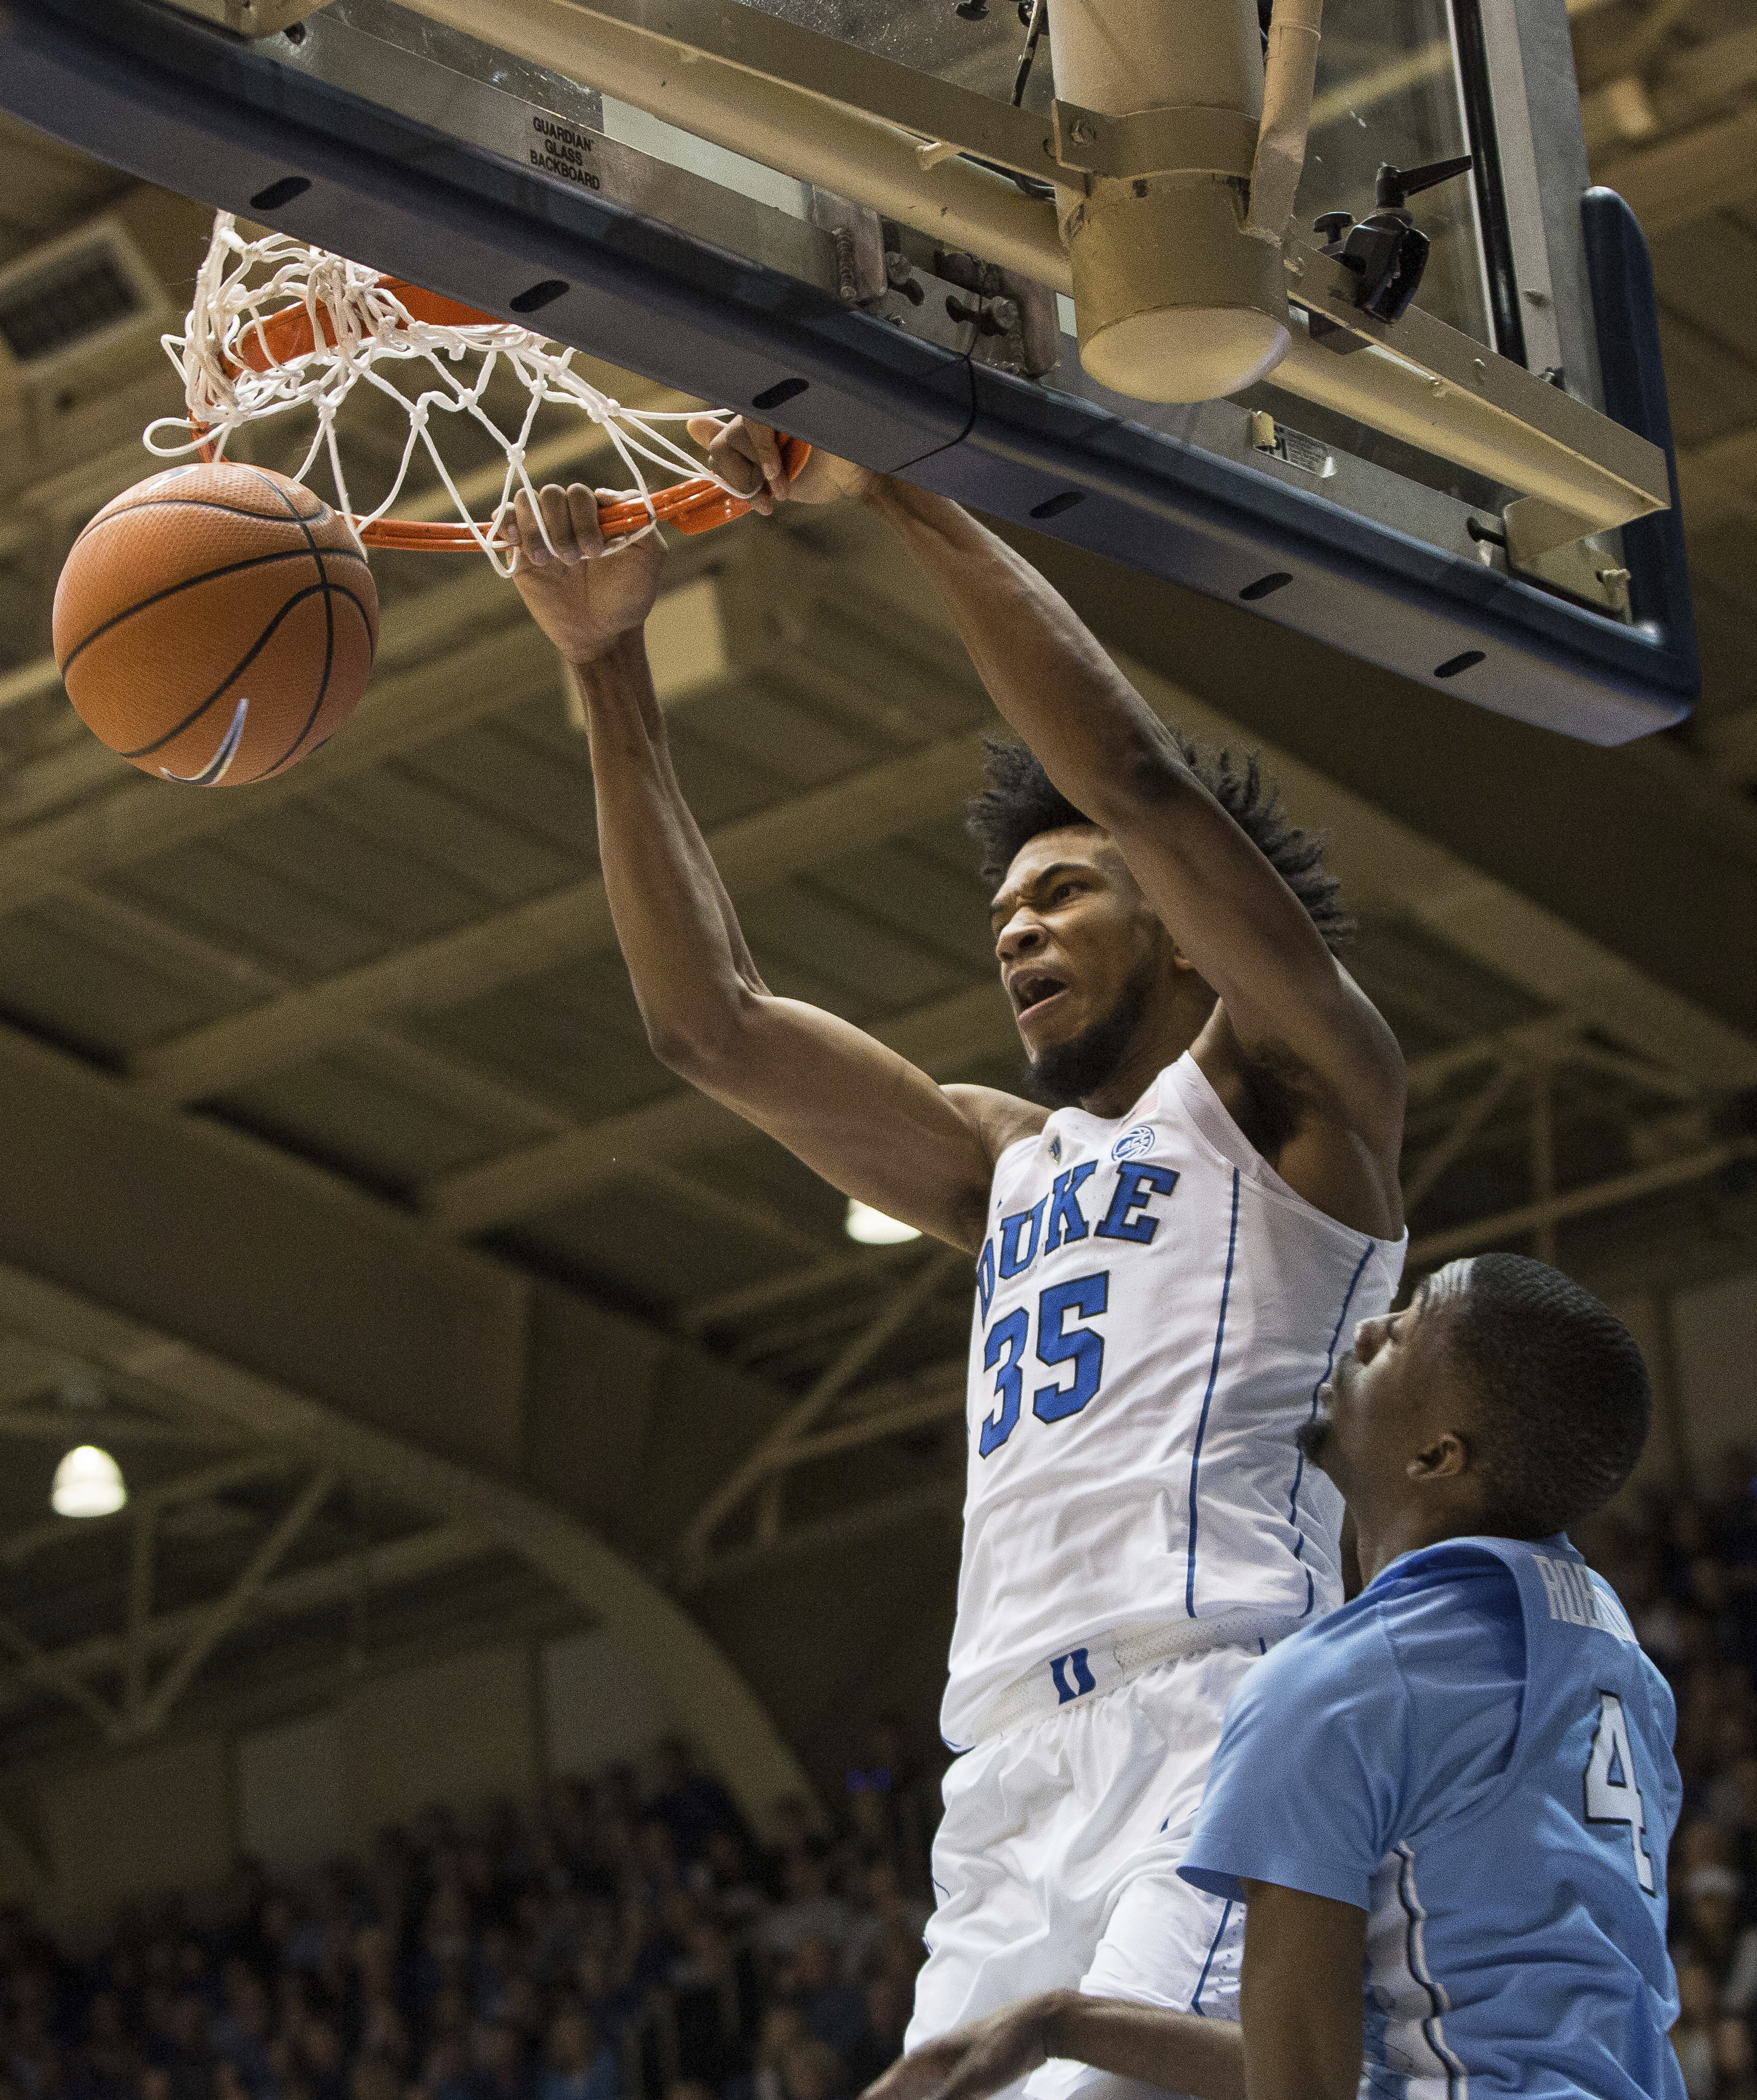 <div class='meta'><div class='origin-logo' data-origin='none'></div><span class='caption-text' data-credit='AP Photo/Ben McKeown'>Duke's Marvin Bagley III (35) dunks over North Carolina's Brandon Robinson (4) during the first half of an NCAA college basketball game</span></div>